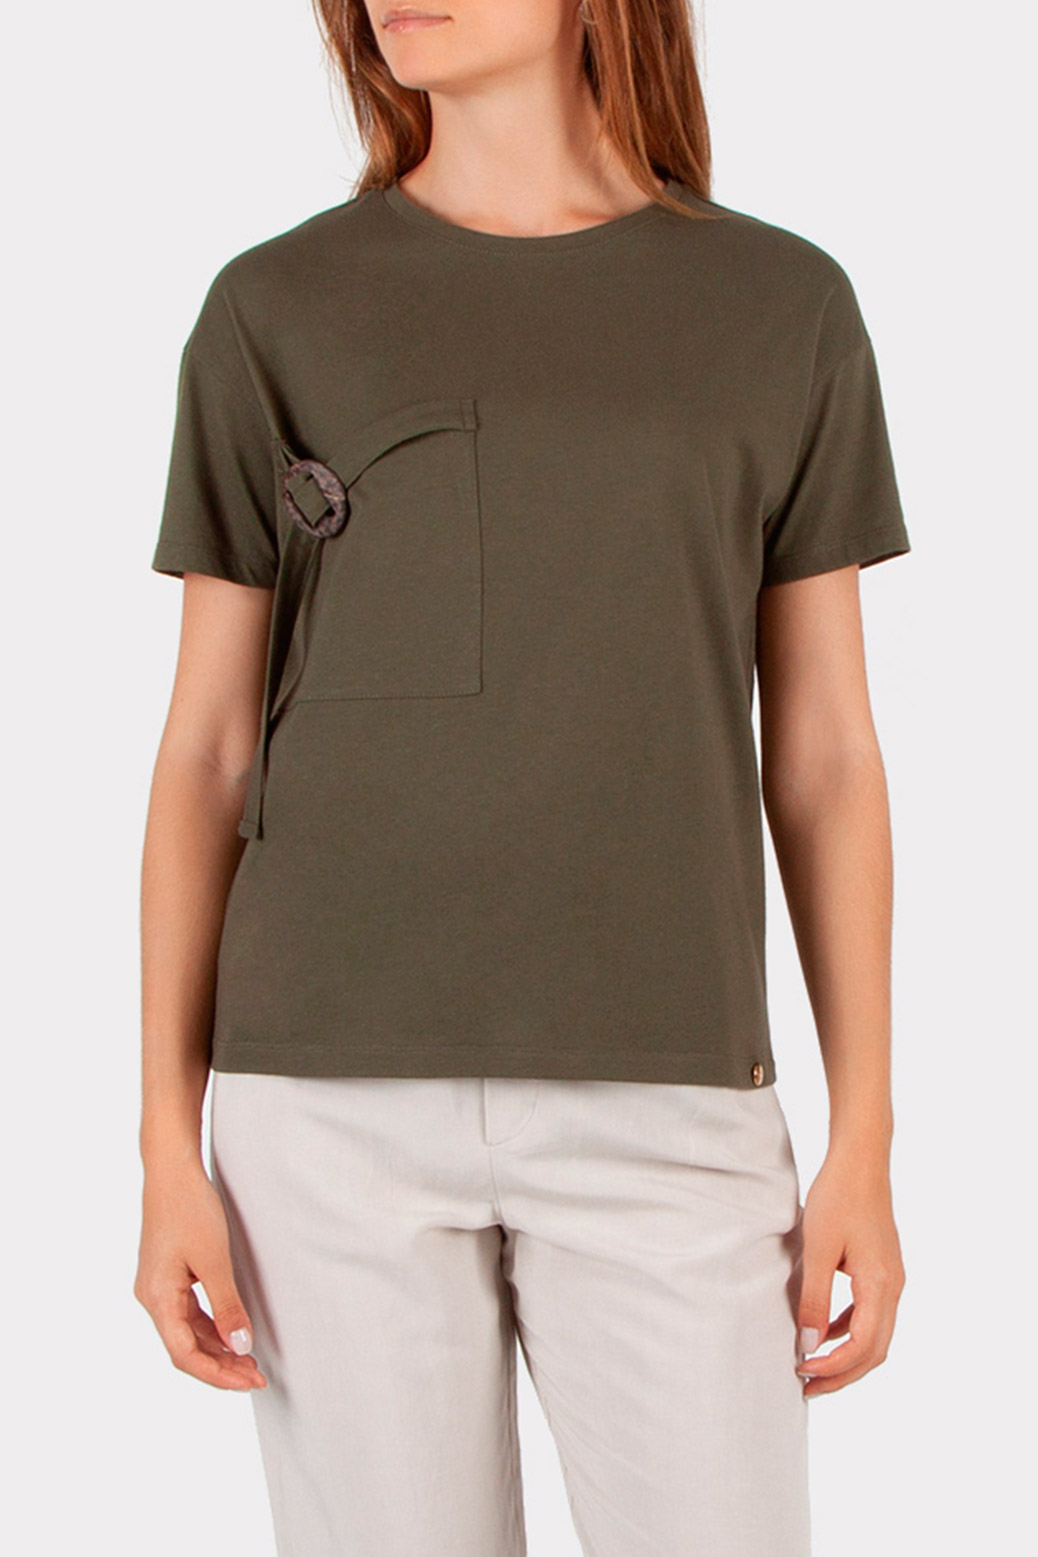 T-Shirt - Cotton Brothers